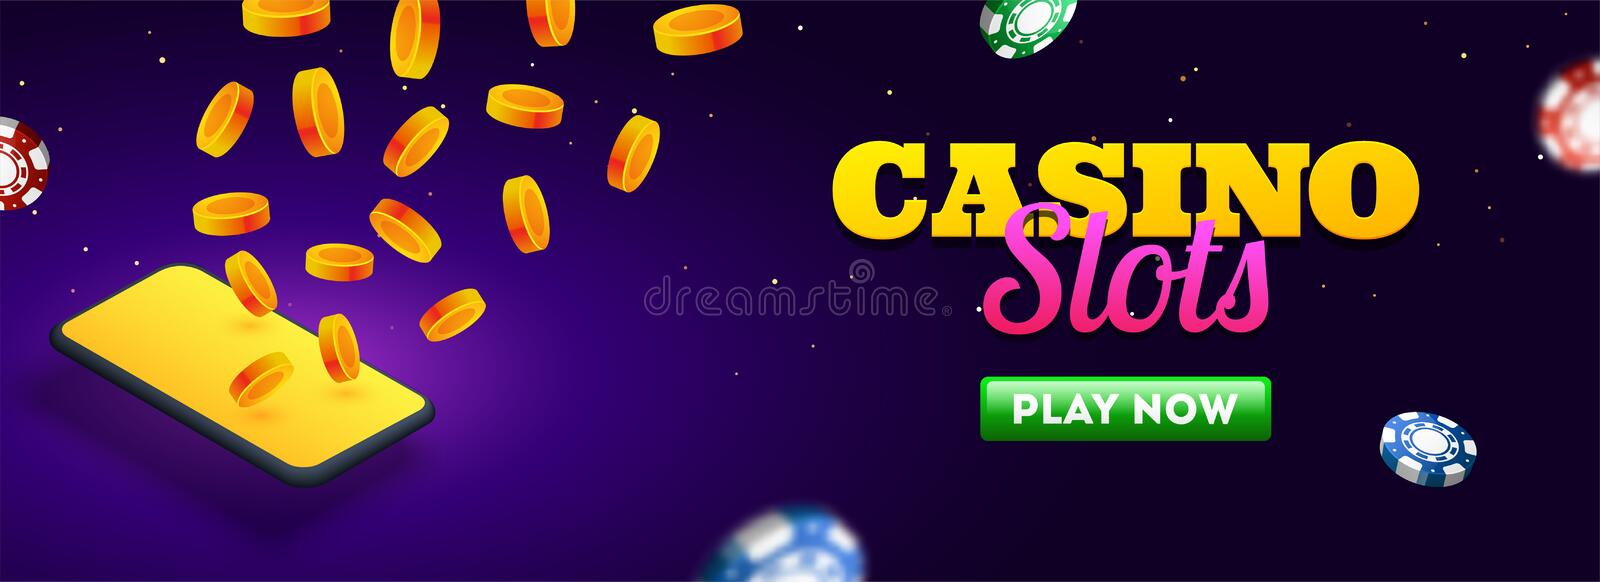 Casino slots header or banner design with smartphone, gold coins and casino chips. stock illustration